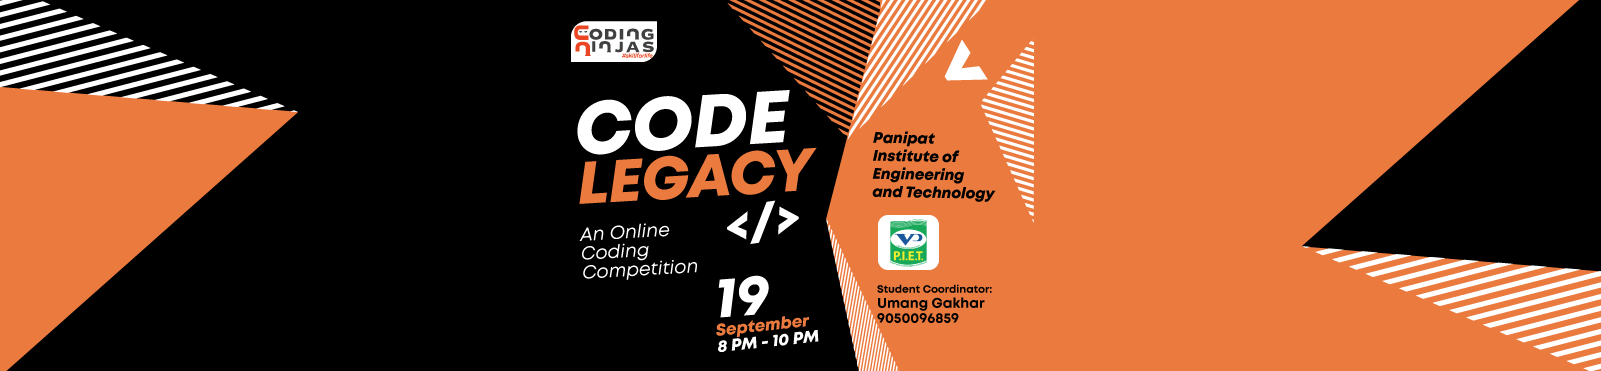 "Code Legacy at ""Panipat Institute of Engineering and Technology  """